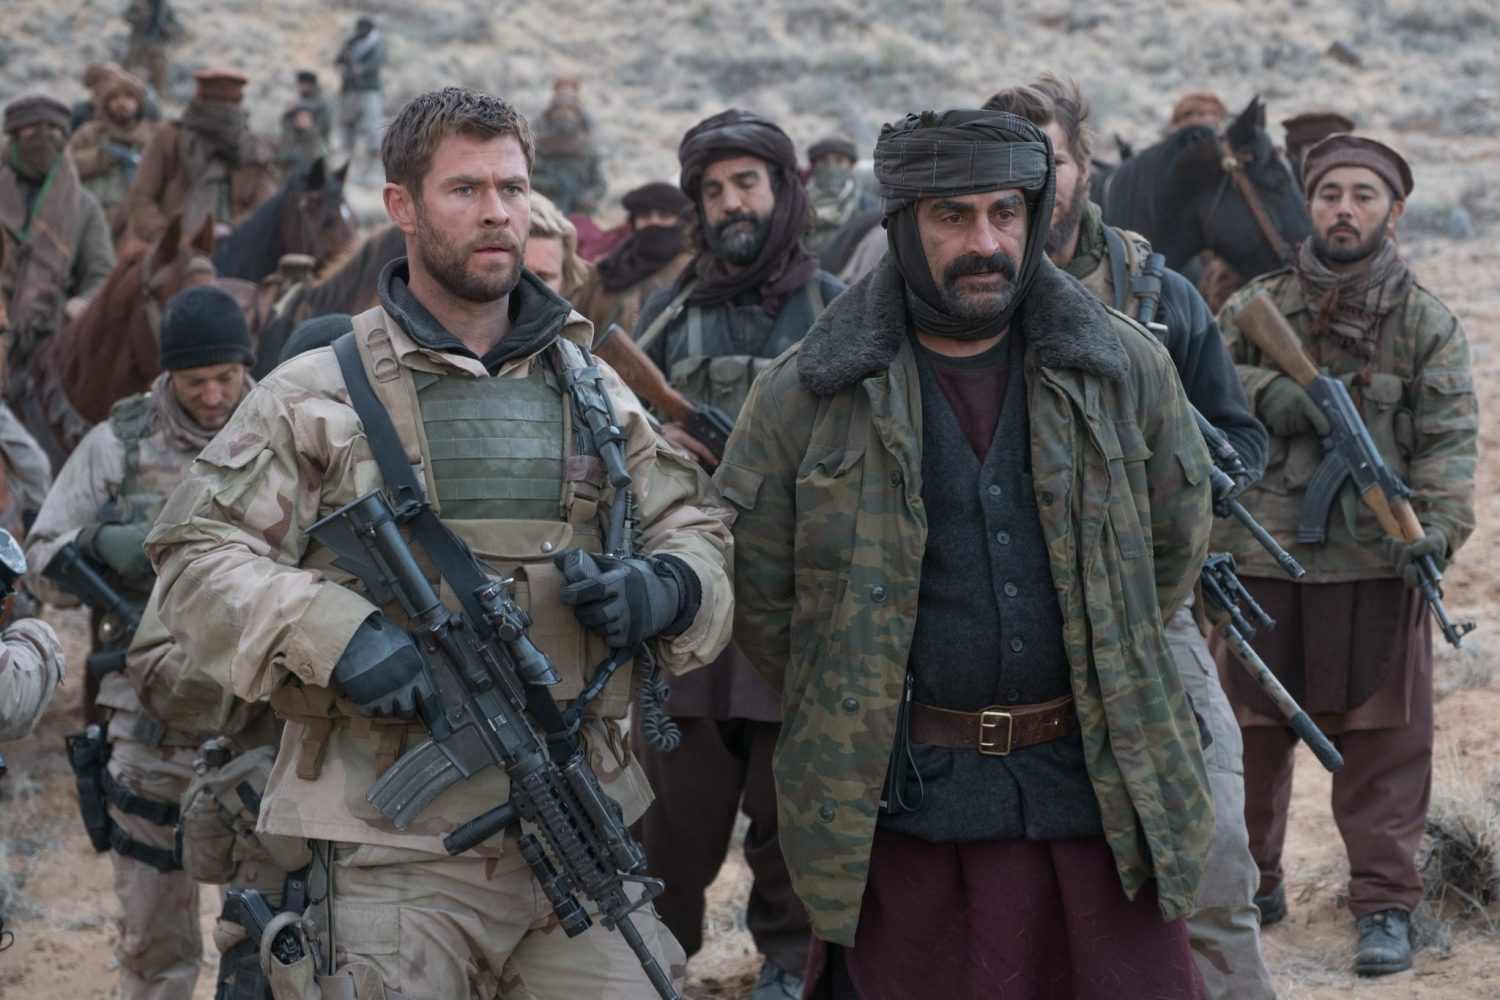 12 Strong Operation 12 Strong Chris Hemsworth Soldaten Kriegsfilm Review Kritik Blu-ray Heimkino Titel Verbündete